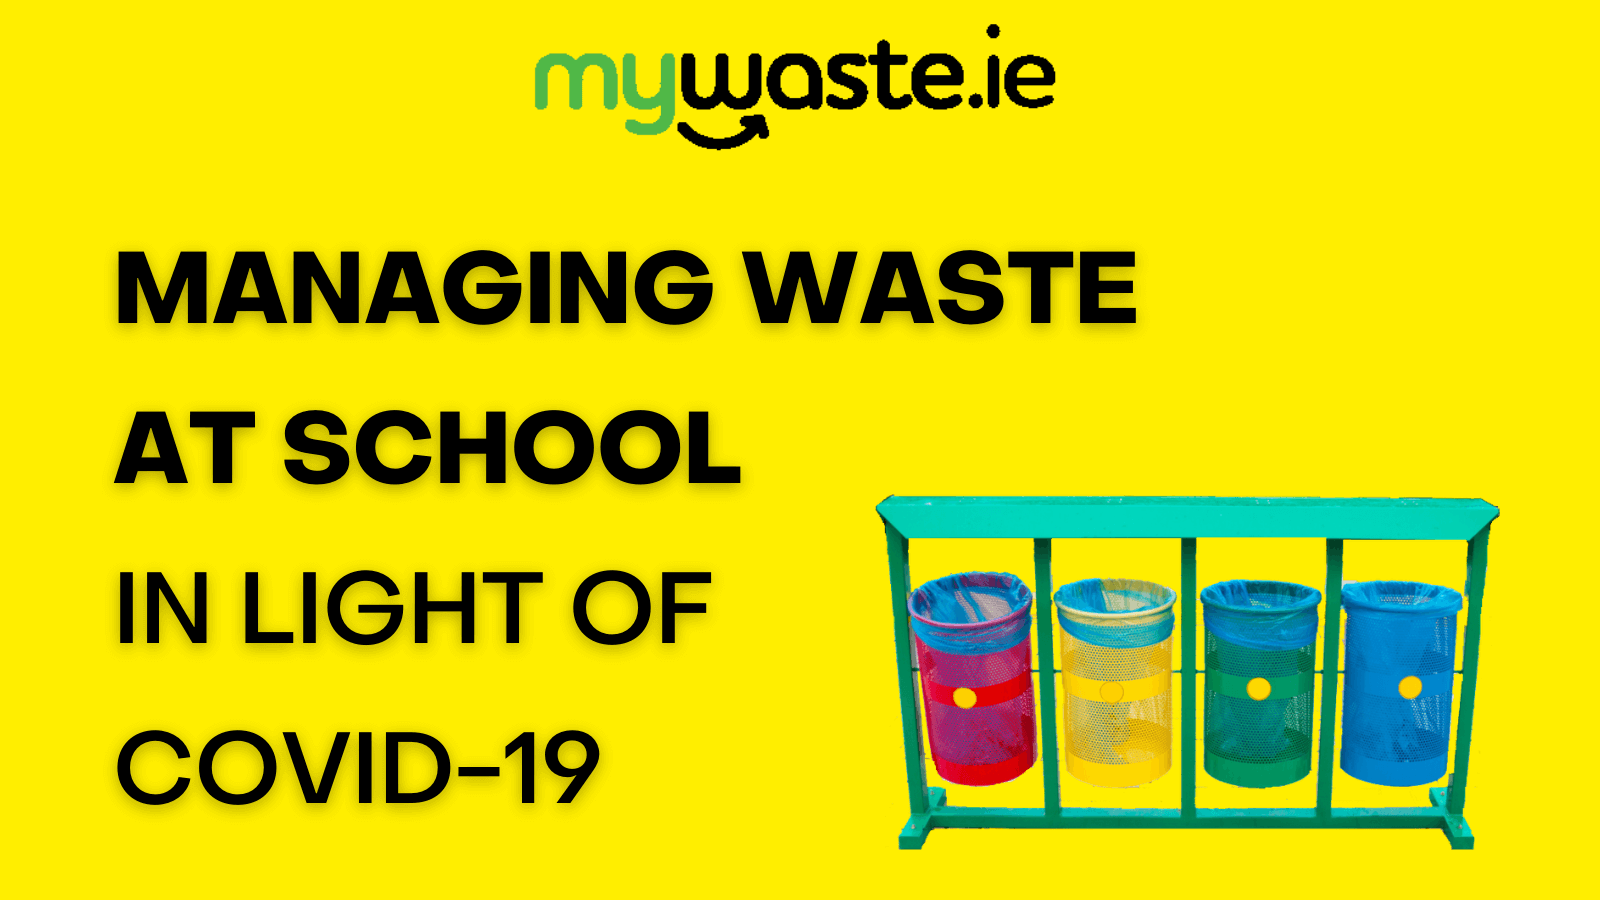 Managing Waste at School in Light of COVID-19